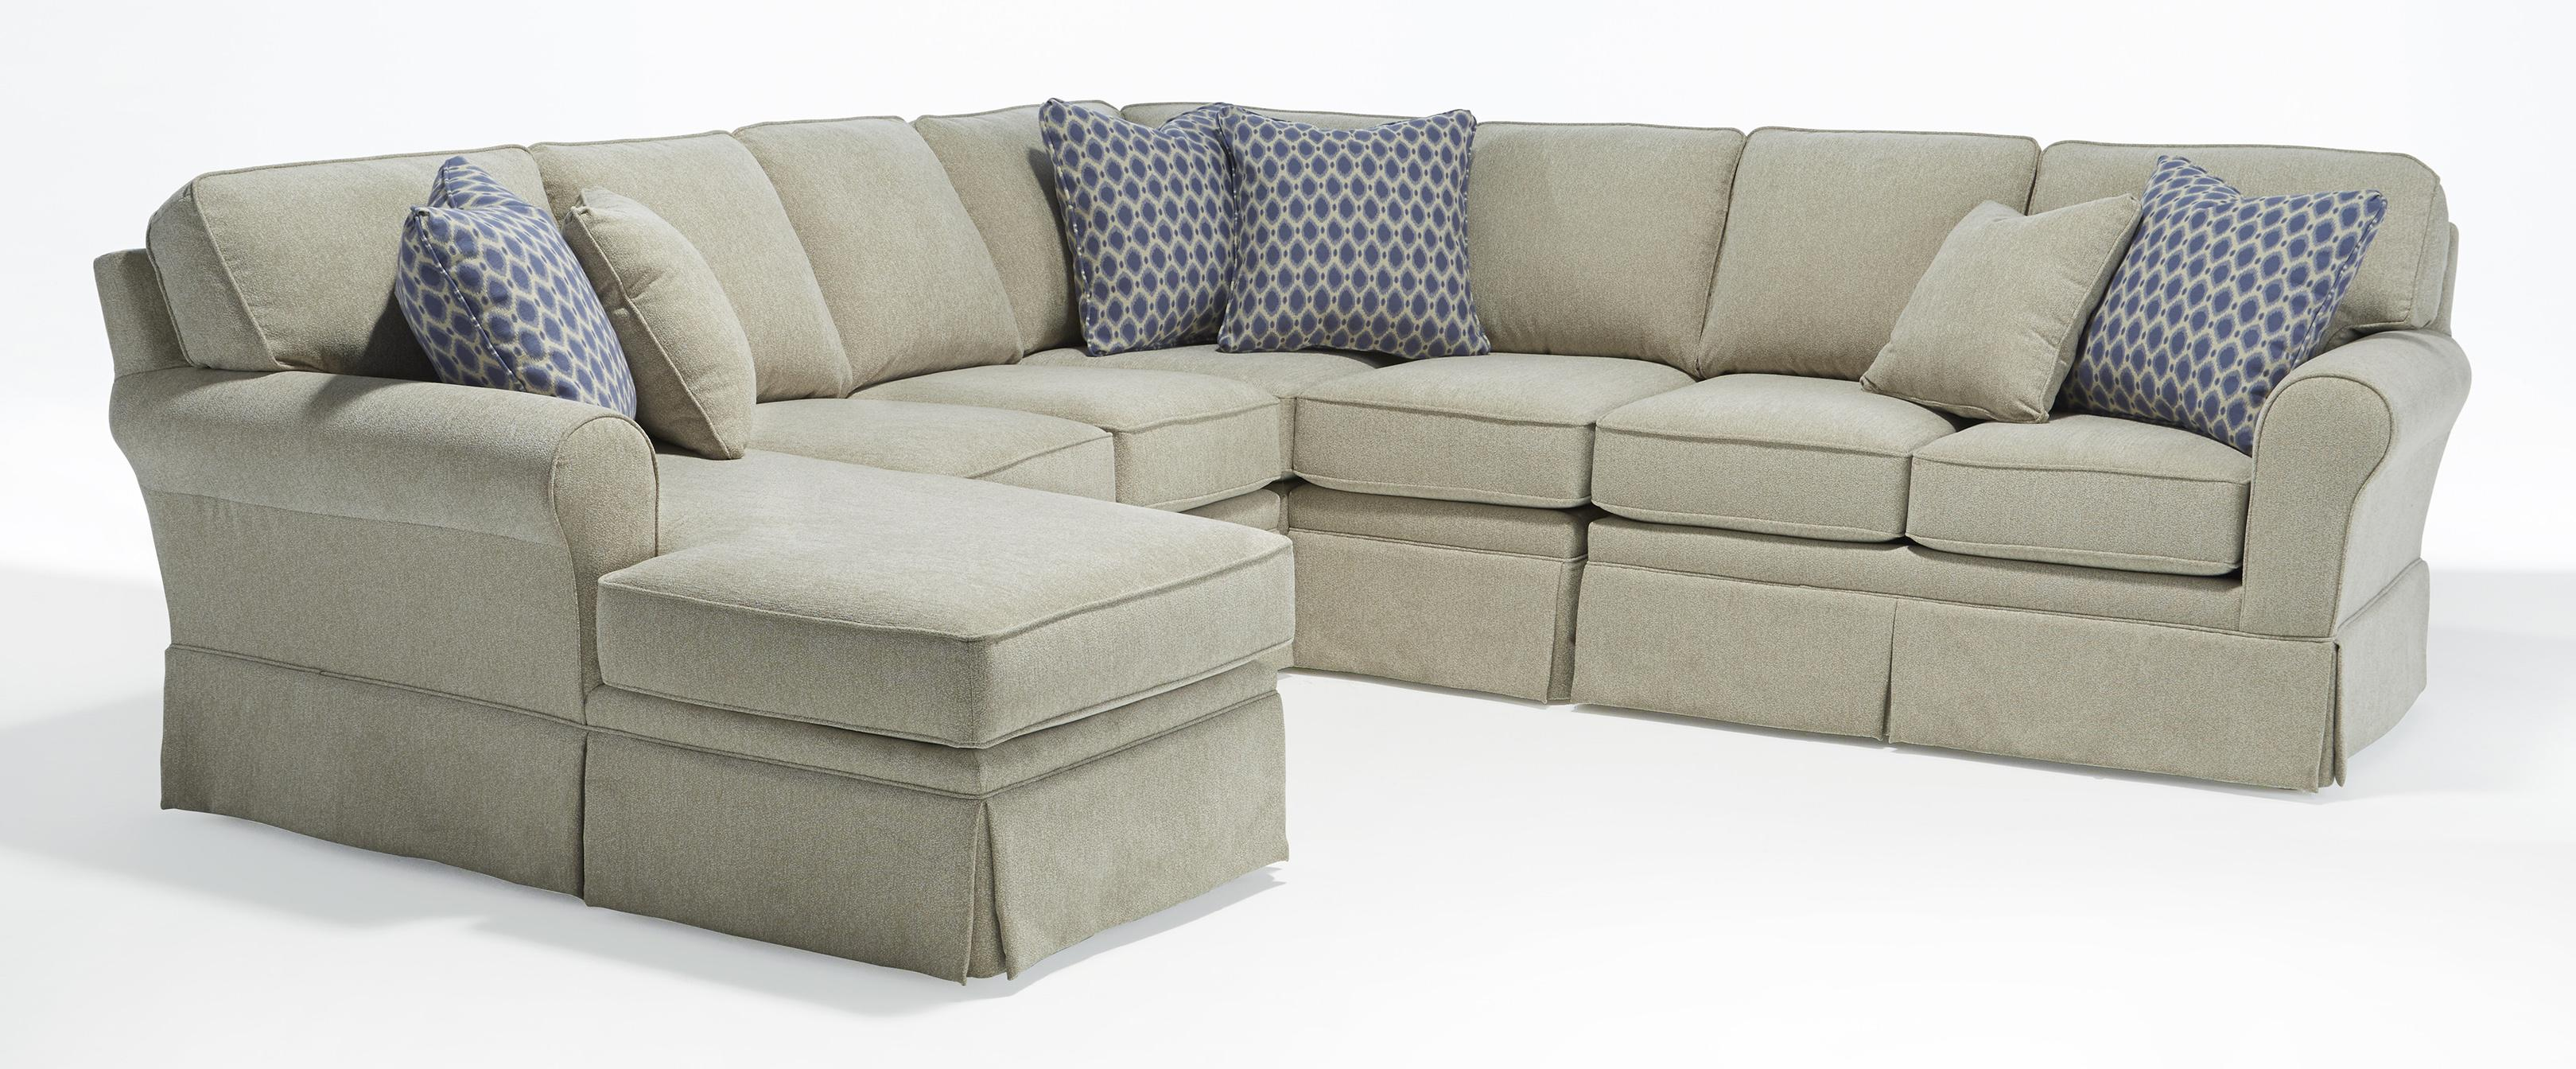 Five Piece Customizable Sectional Sofa With Sock Rolled Arms And Skirted  Base